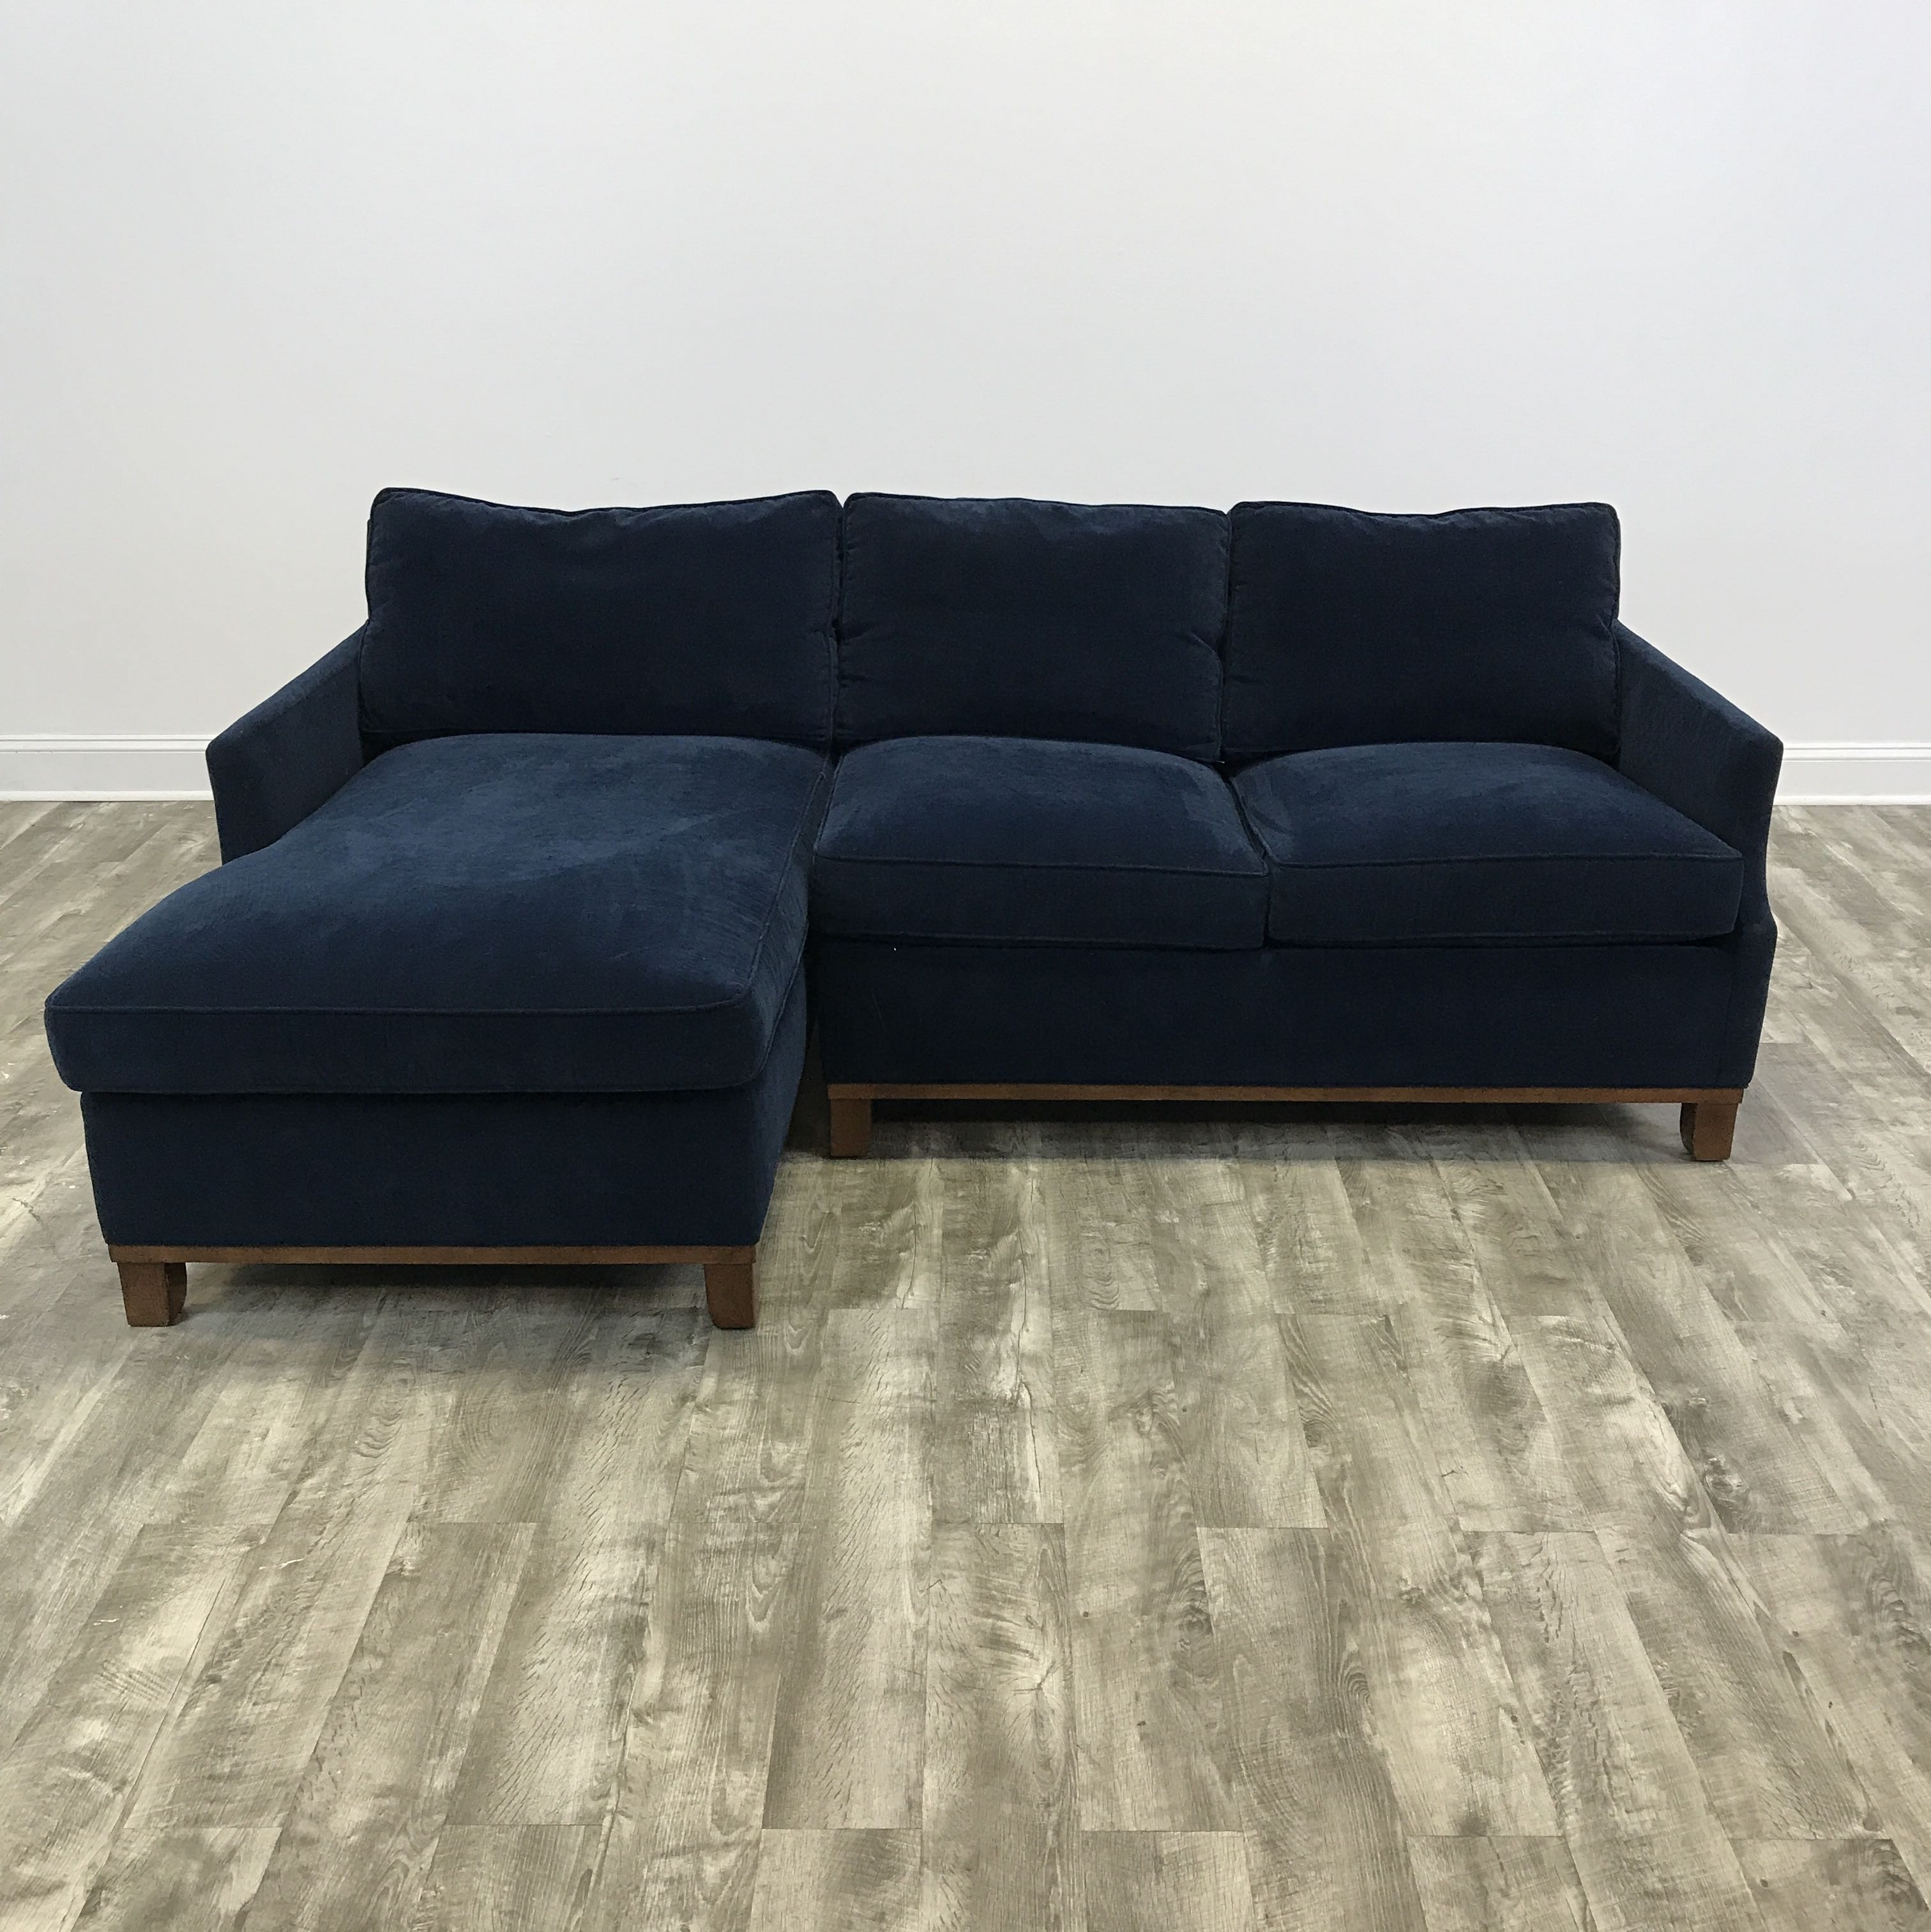 Navy Velvet Sectional – Intnl Wildrover Inside Delano 2 Piece Sectionals With Raf Oversized Chaise (Image 24 of 25)